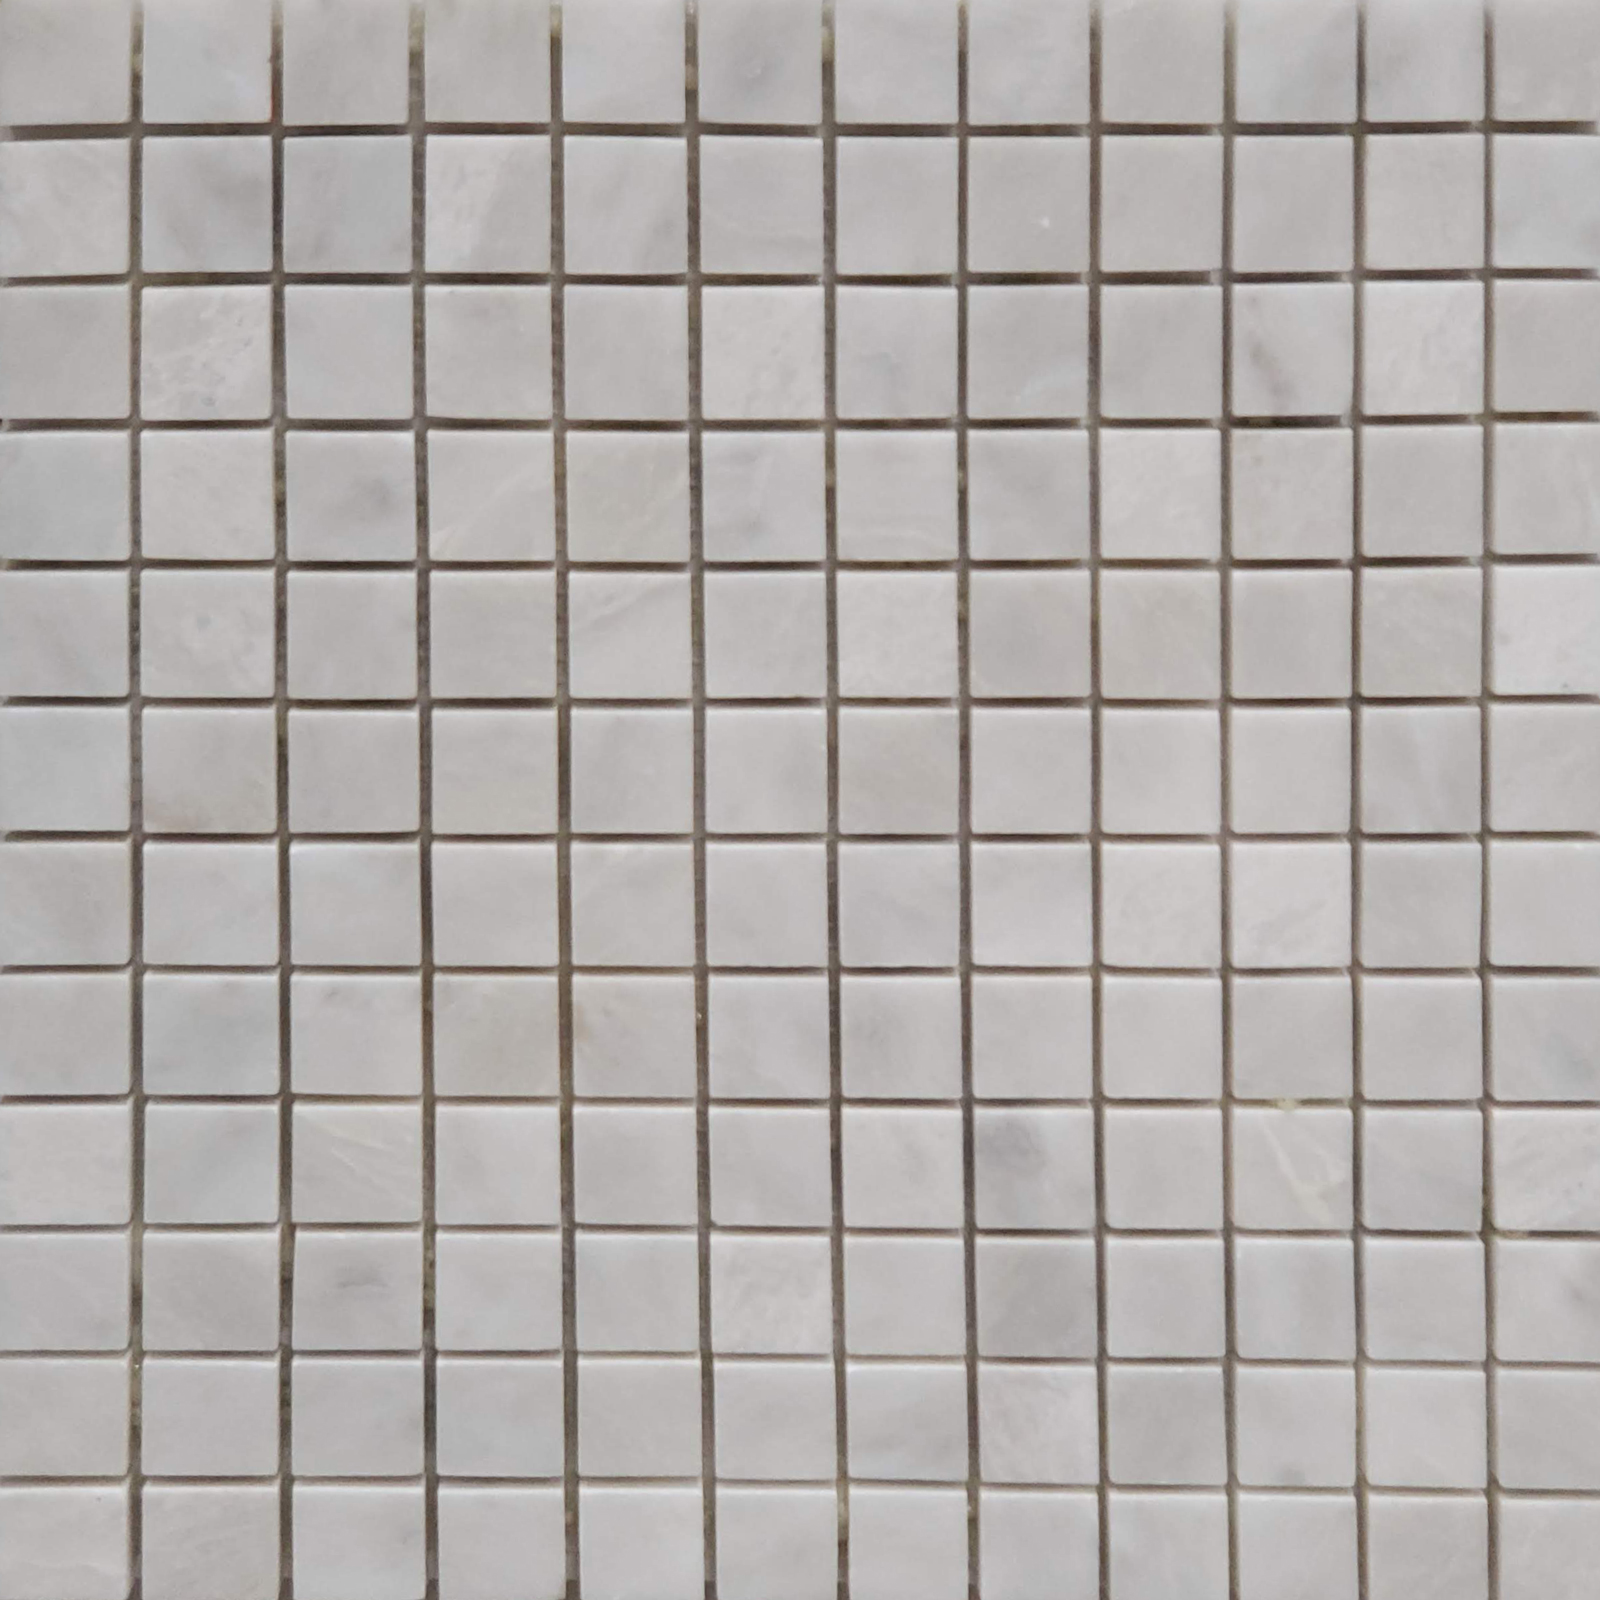 1x1 Mosaic Alaska White Marble Polished